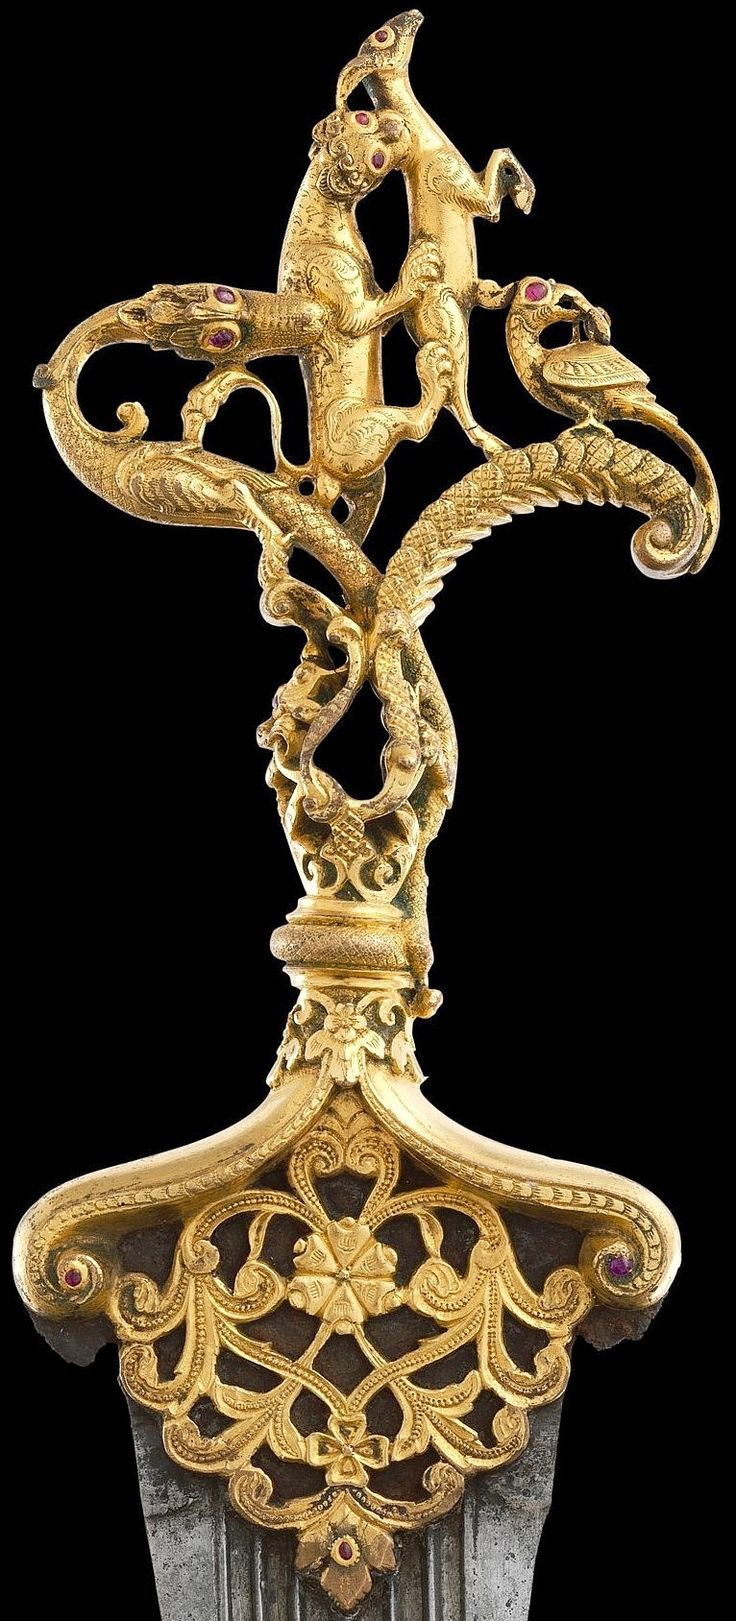 Indian (Deccan, Bijapur or Golconda) dagger, 16th c, cast copper hilt, chased, gilded, inlaid with rubies. Portraits of Sultan 'Ali 'Adil Shah of Bijapur 1558–80 show him wearing similar zoomorphic hilt daggers. In the ruby-studded hilt, a dragon whose tail wraps around the grip attacks a lion, which is attacking a deer, symbolic of the deity Garuda. Before the deer is a bird with a snake in its beak. Lower down is a mythical lionlike Yali, with floral scrolls issuing from its mouth. Met…